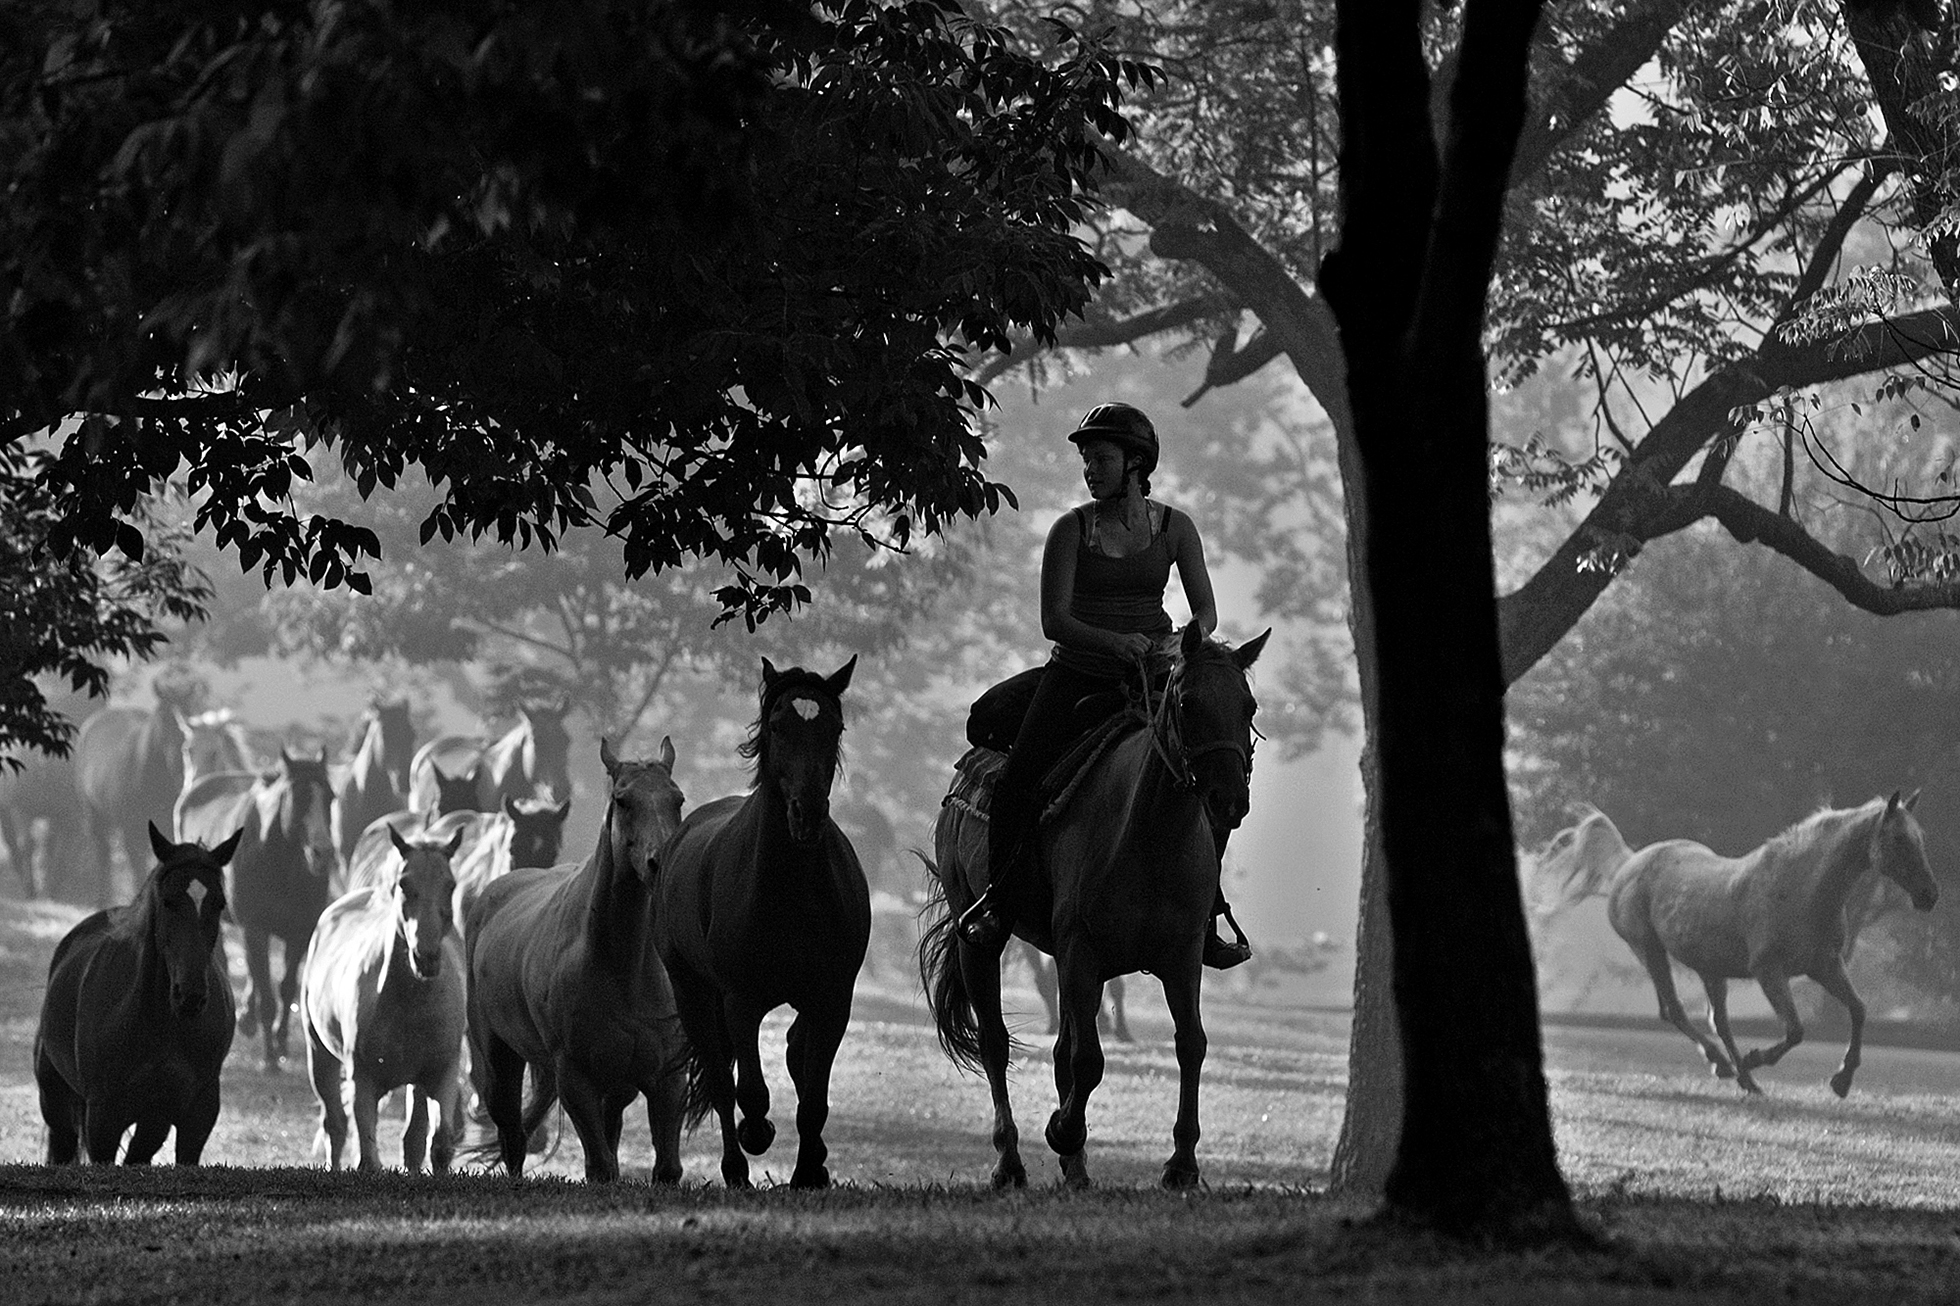 Before the campers at Camp Carson in Princeton woke in the morning, Leah Miller of Jasper stampeded the 16 horses from the pasture up through camp to the barn to begin getting them ready for the day.